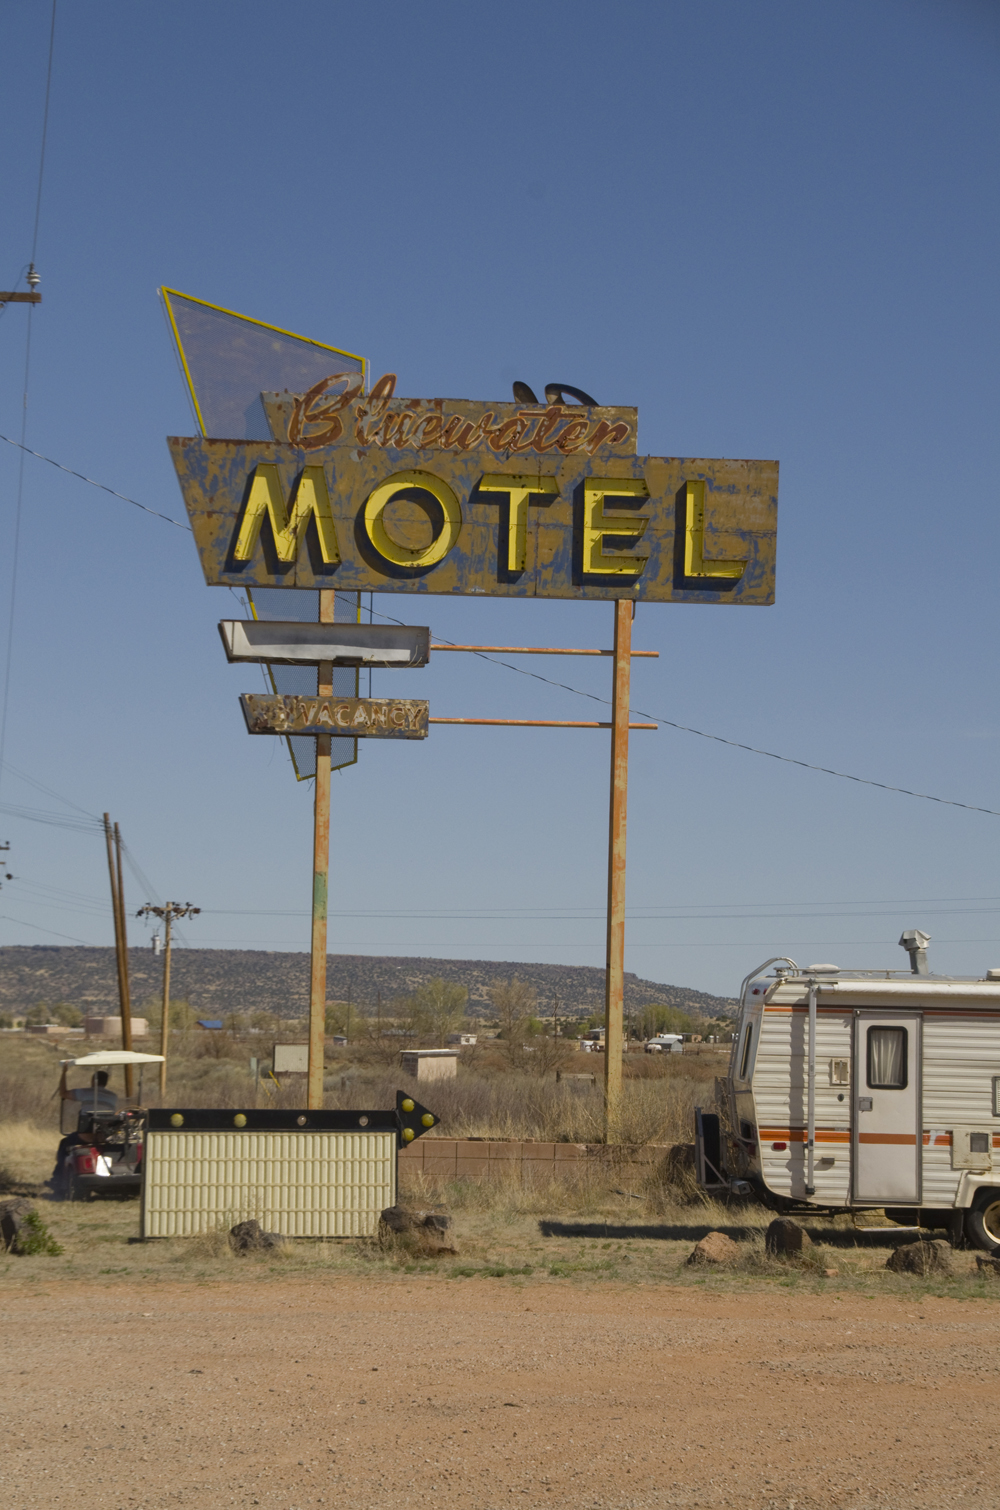 Bluewater Motel (rt 66).jpg